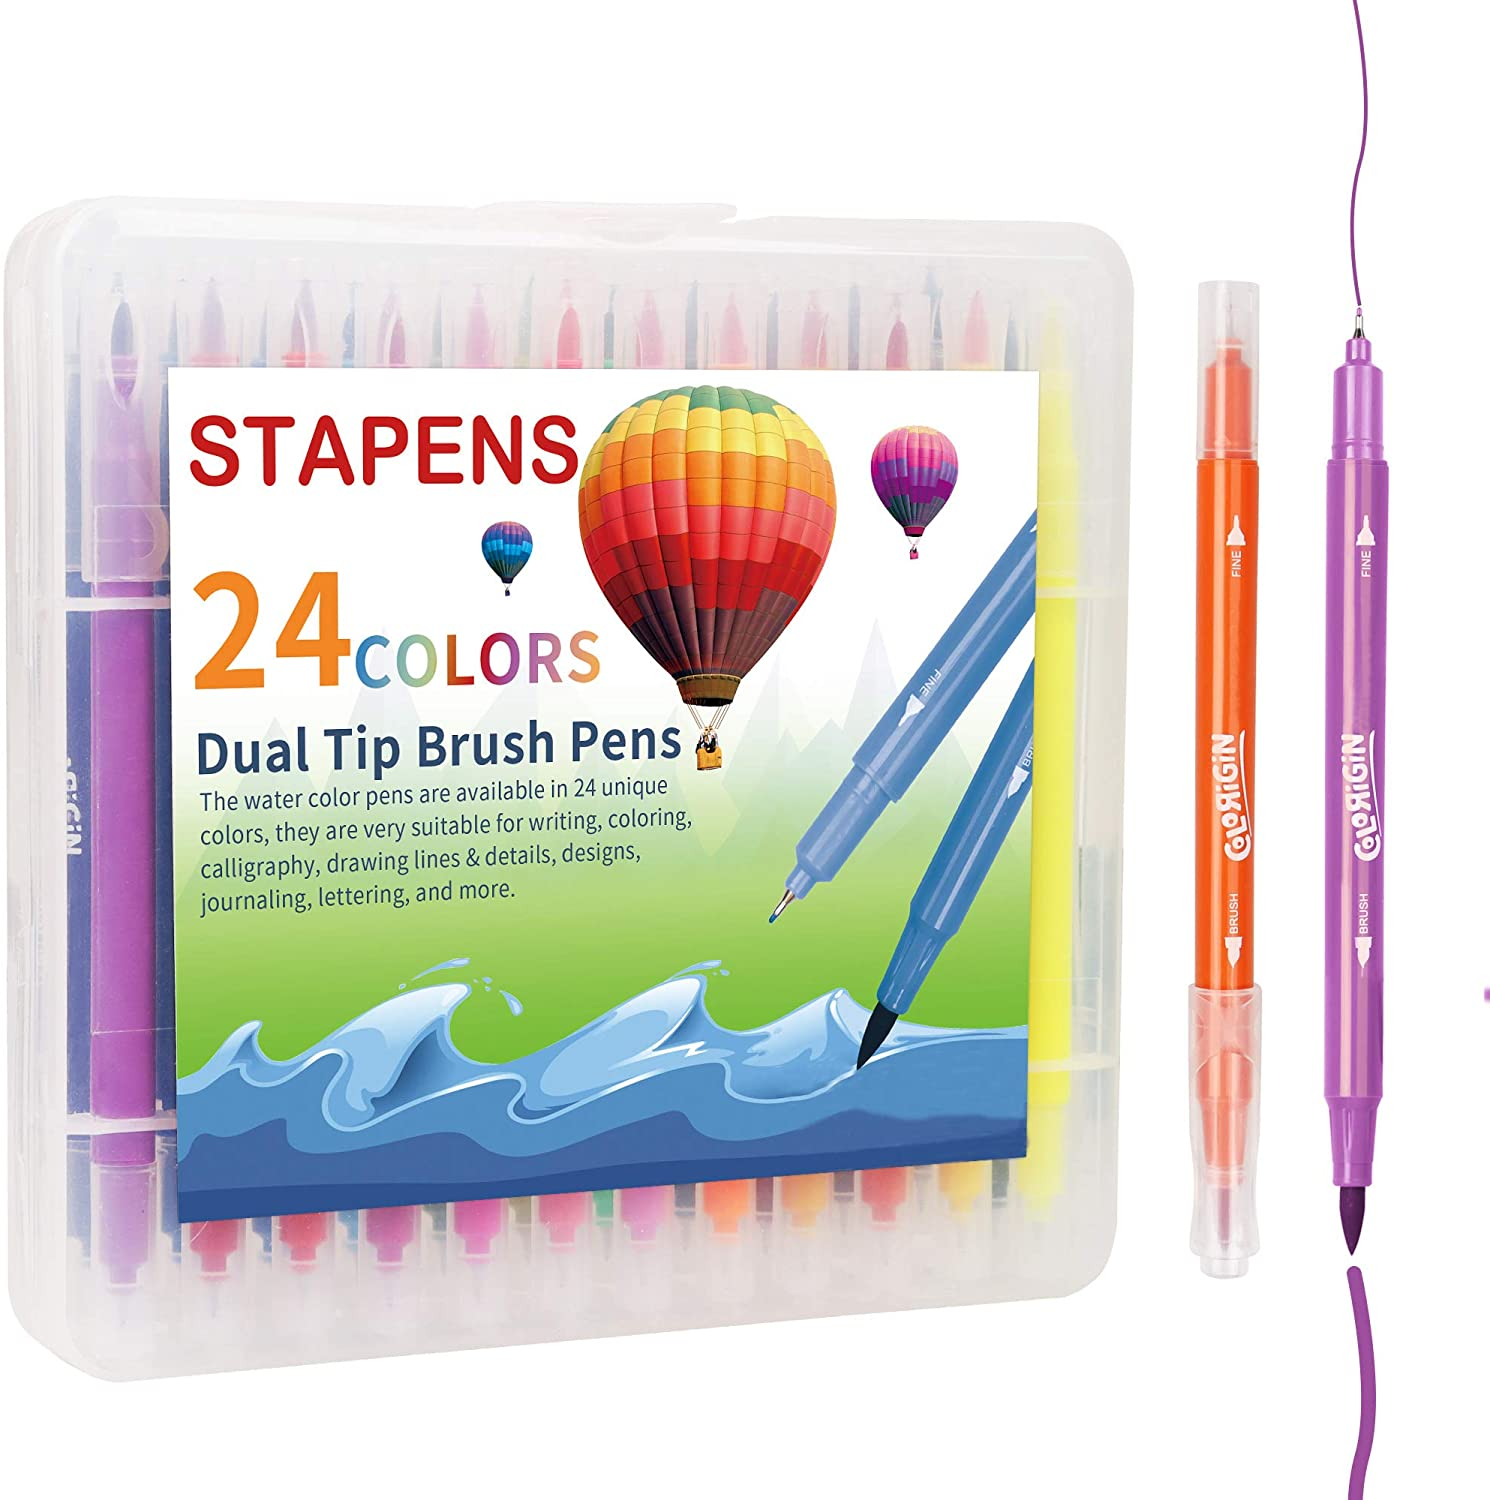 Dual Tip Markers, Double Sided Brush Pens with Fineliner Tip for Calligraphy, Writing and Drawing, 24 Assorted Colors